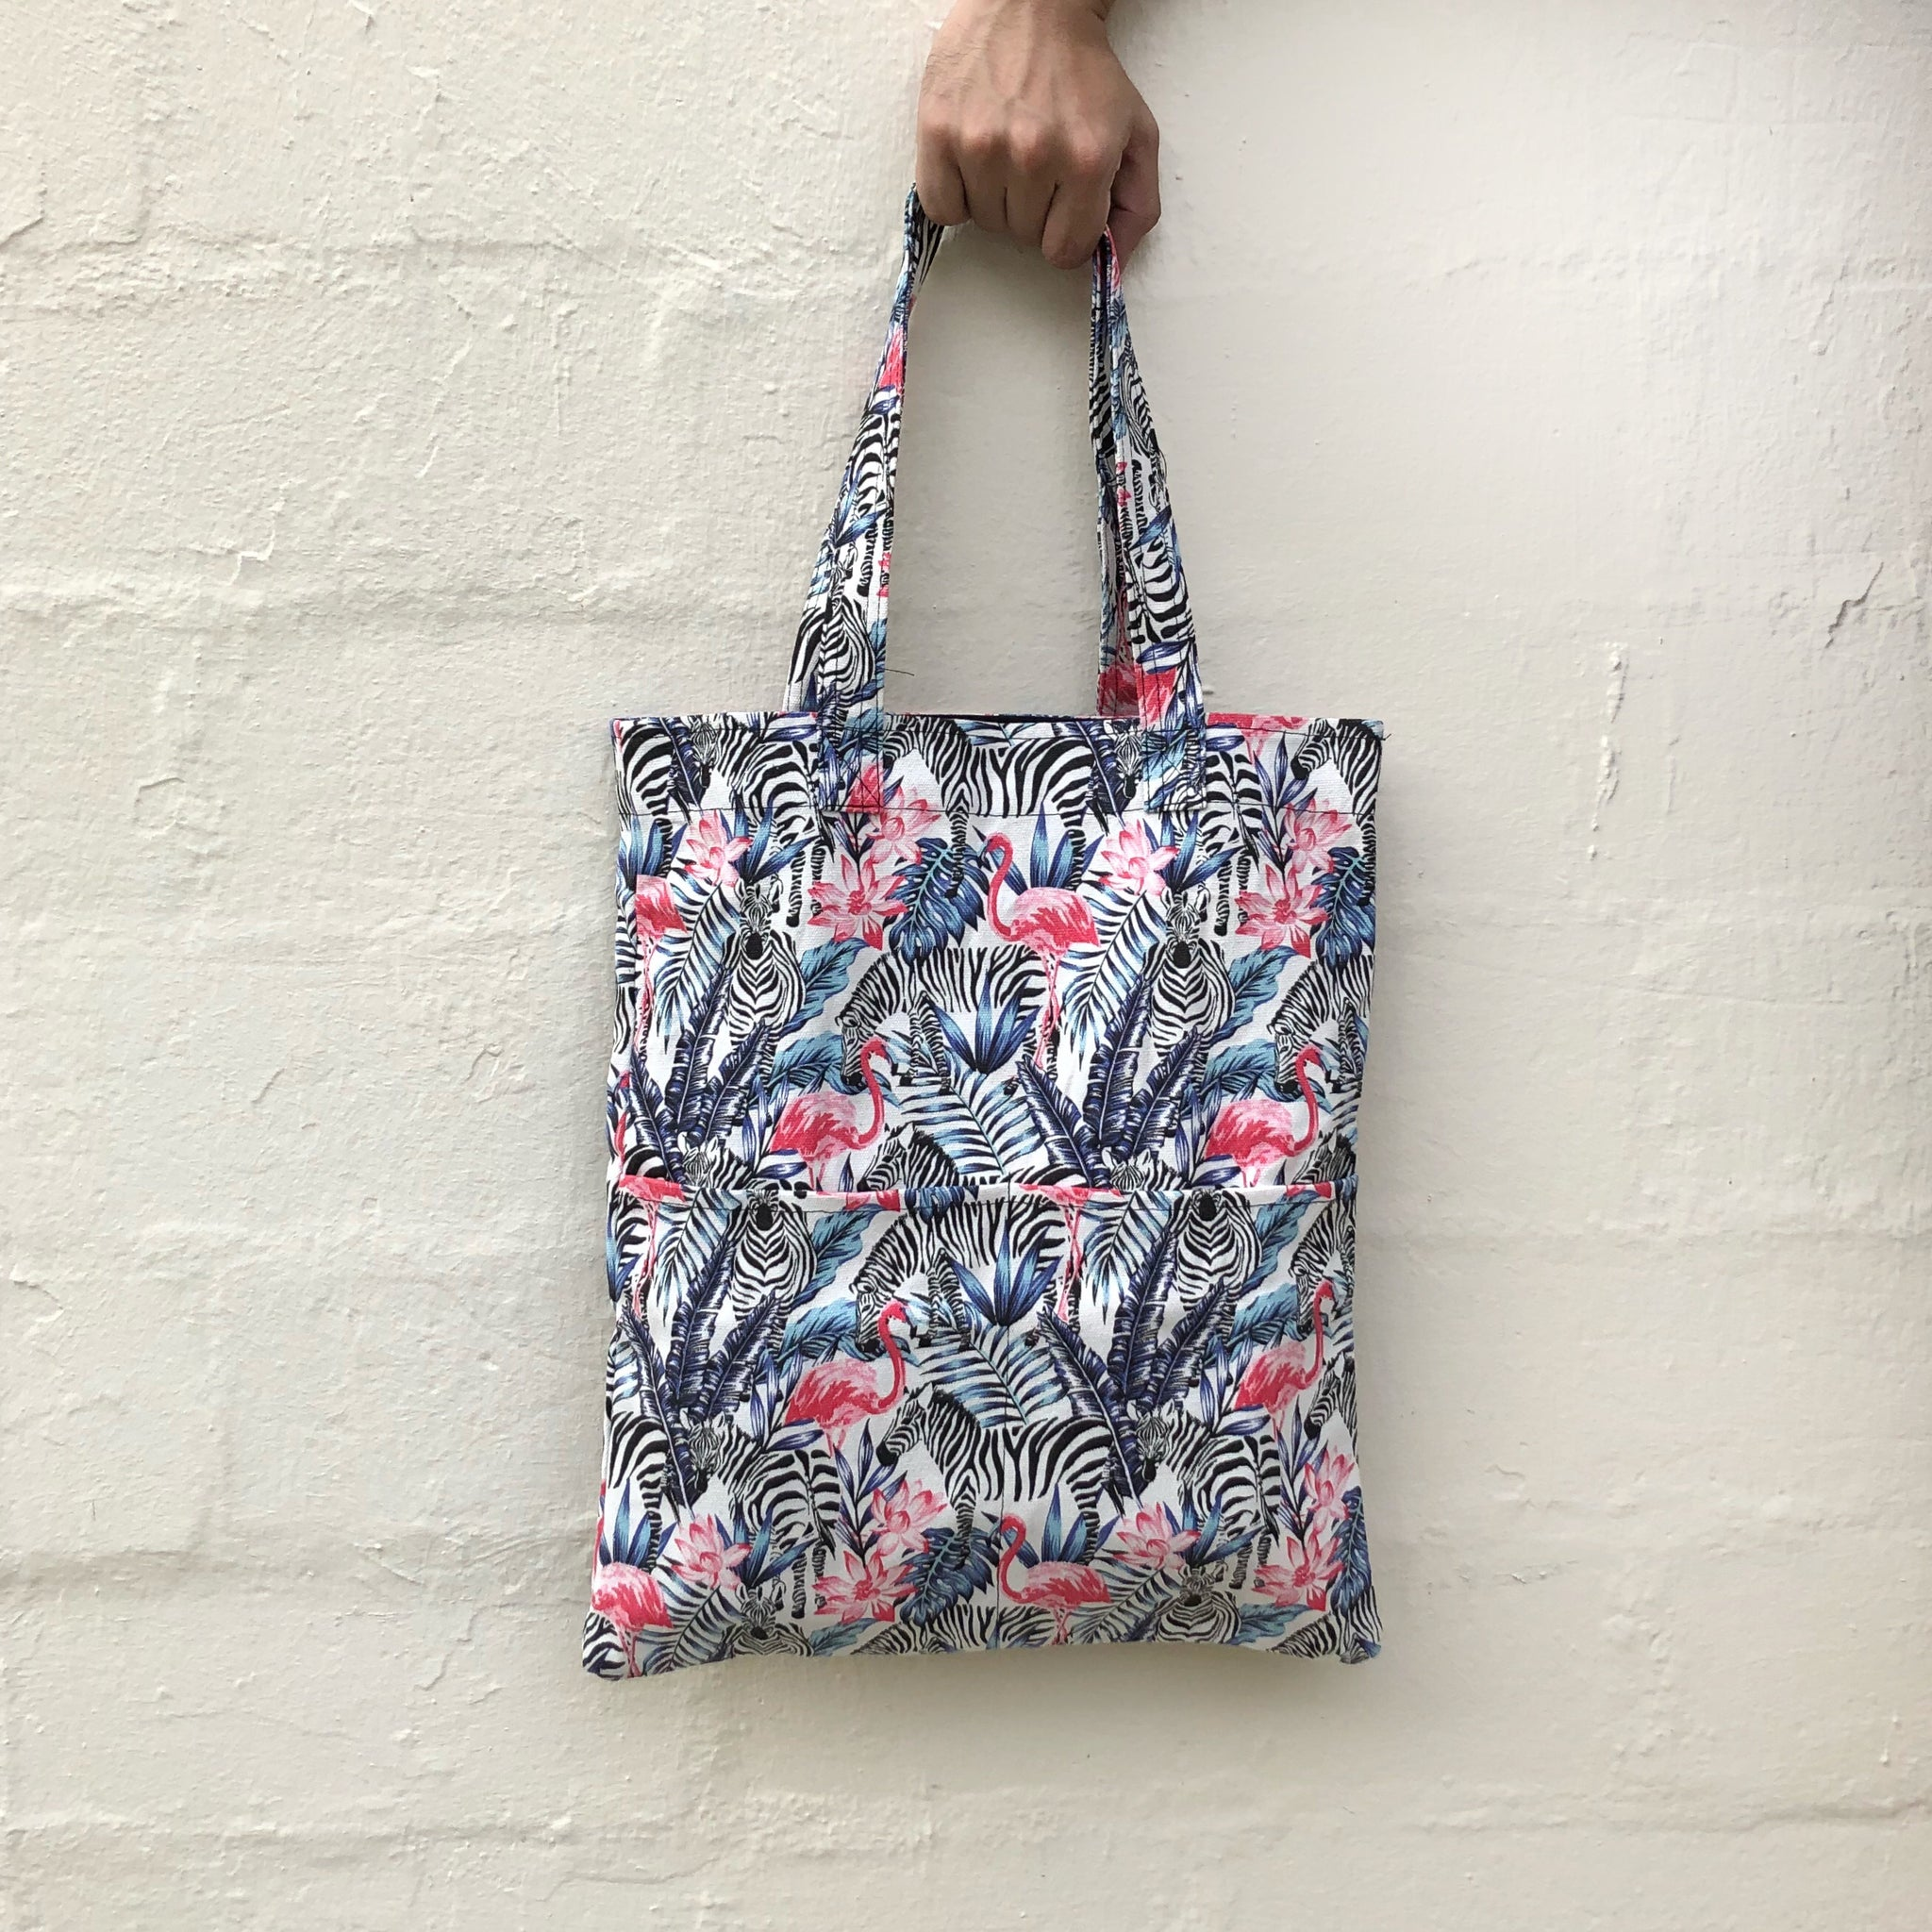 Double Pocket Tote - Zebra Flamingo